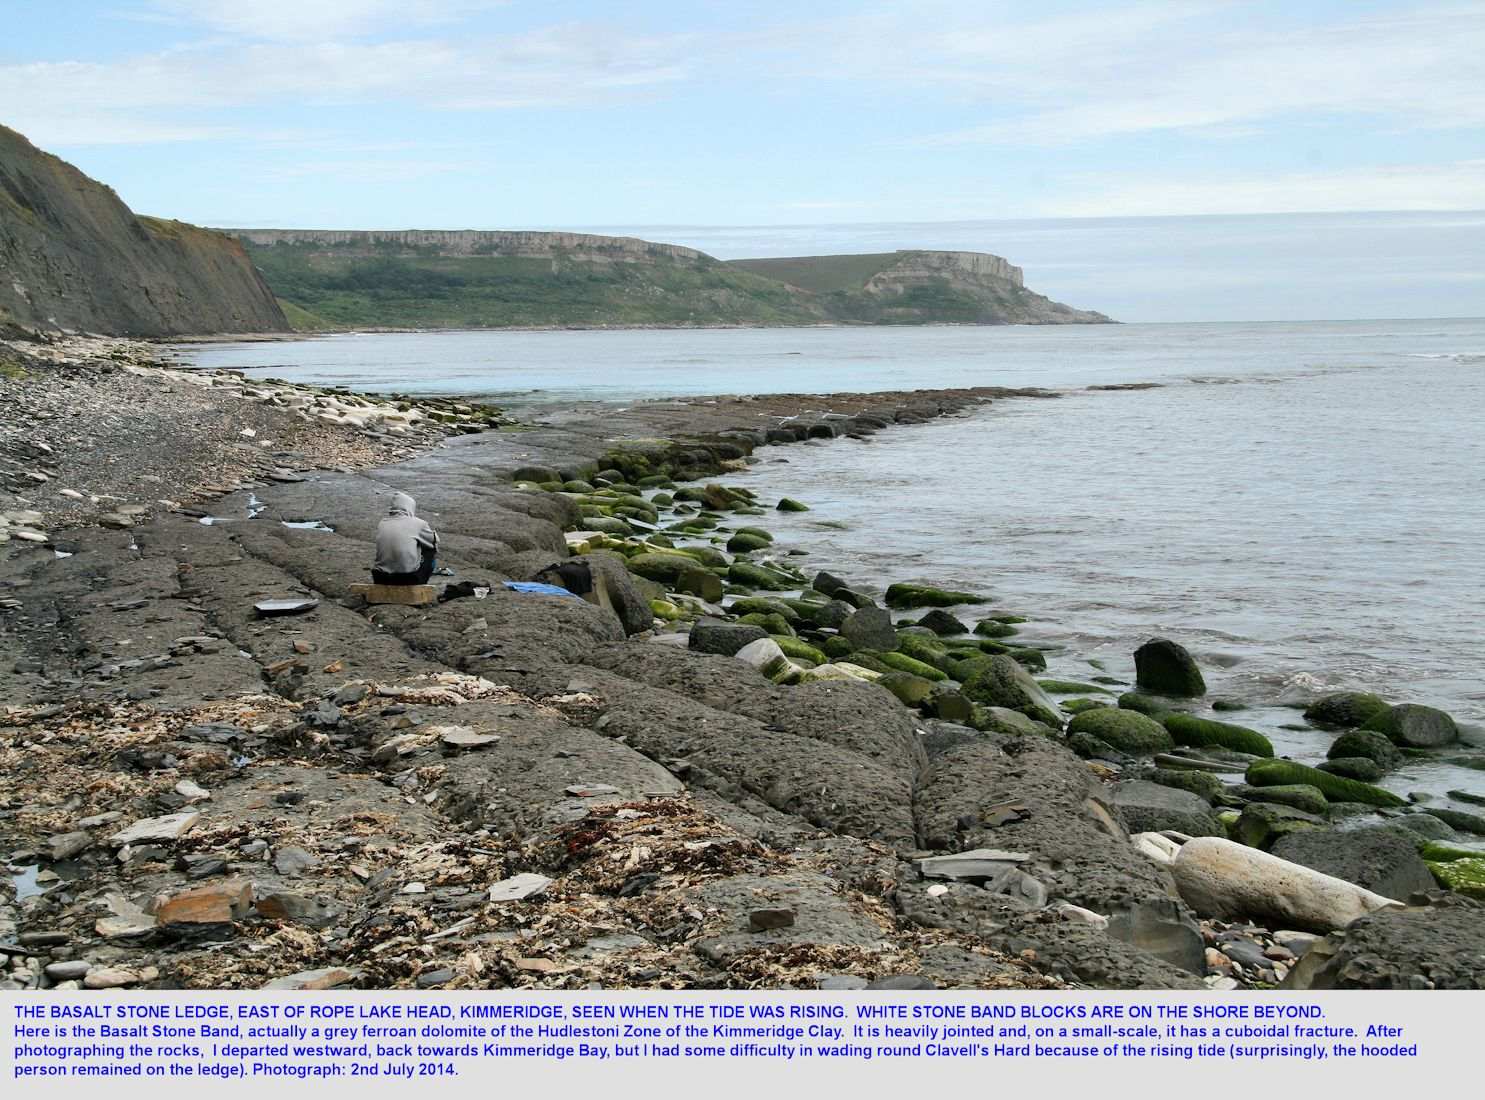 The Basalt Stone, a grey dolostone or dolomite, east of Rope Lake Head,  Kimmeridge, Dorset, 2010